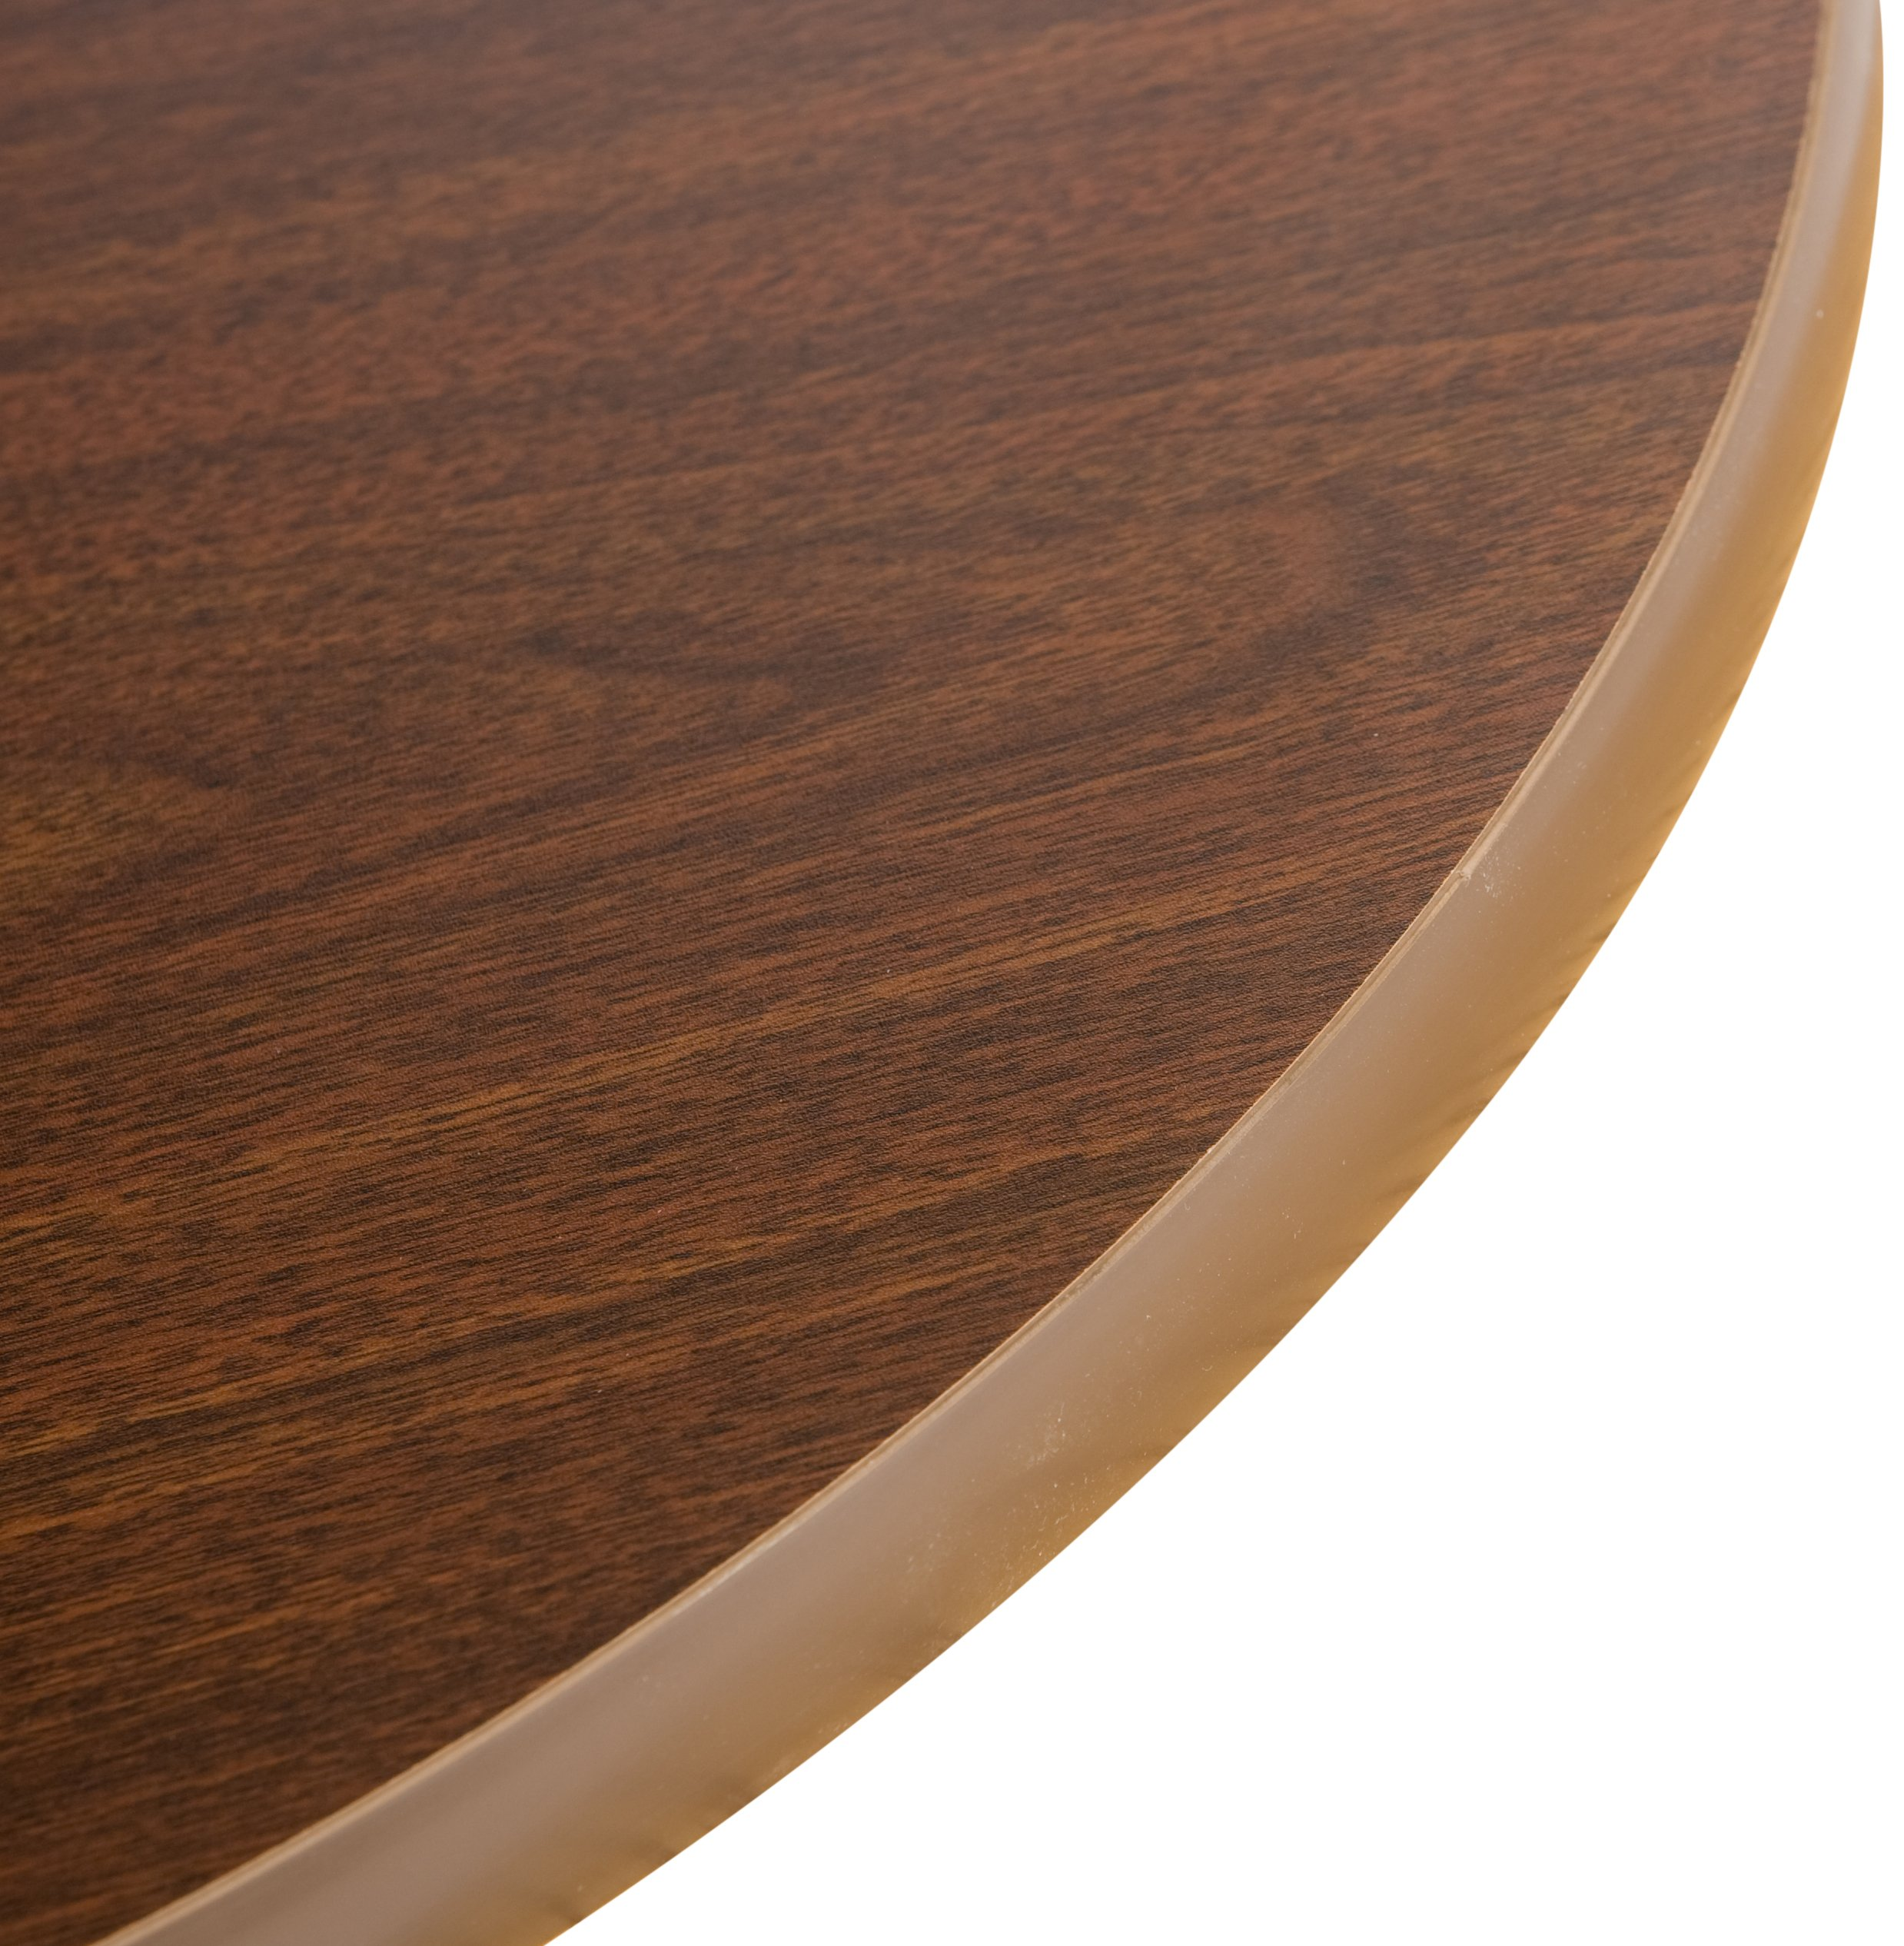 Oak Street Manufacturing OW42R Two Sided Round Tabletop, 42'' Diameter x 1'' Thick, Oak/Walnut by Oak Street Manufacturing